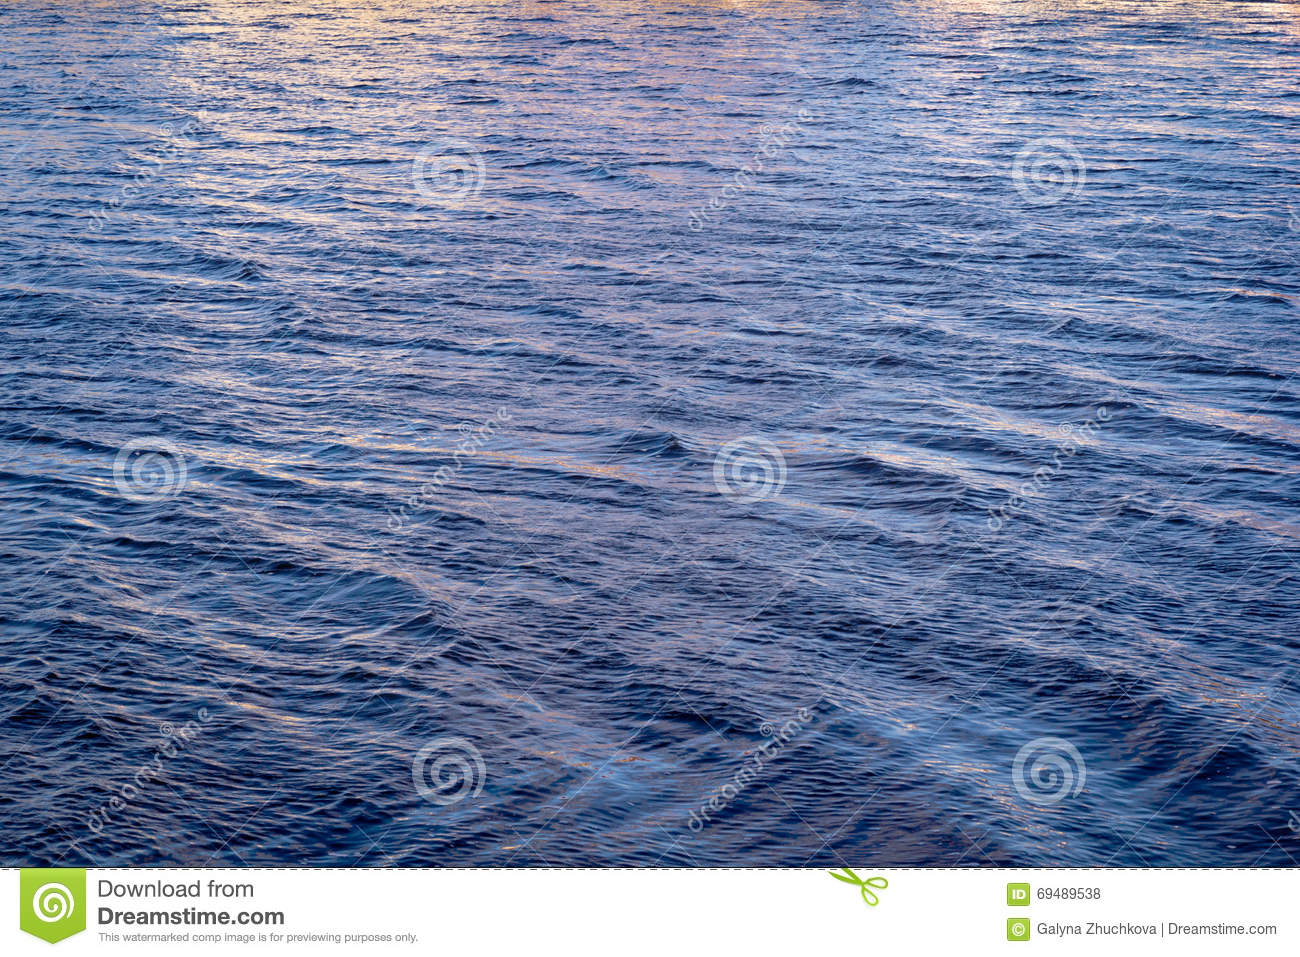 Nearly rose quartz and serenity color river water